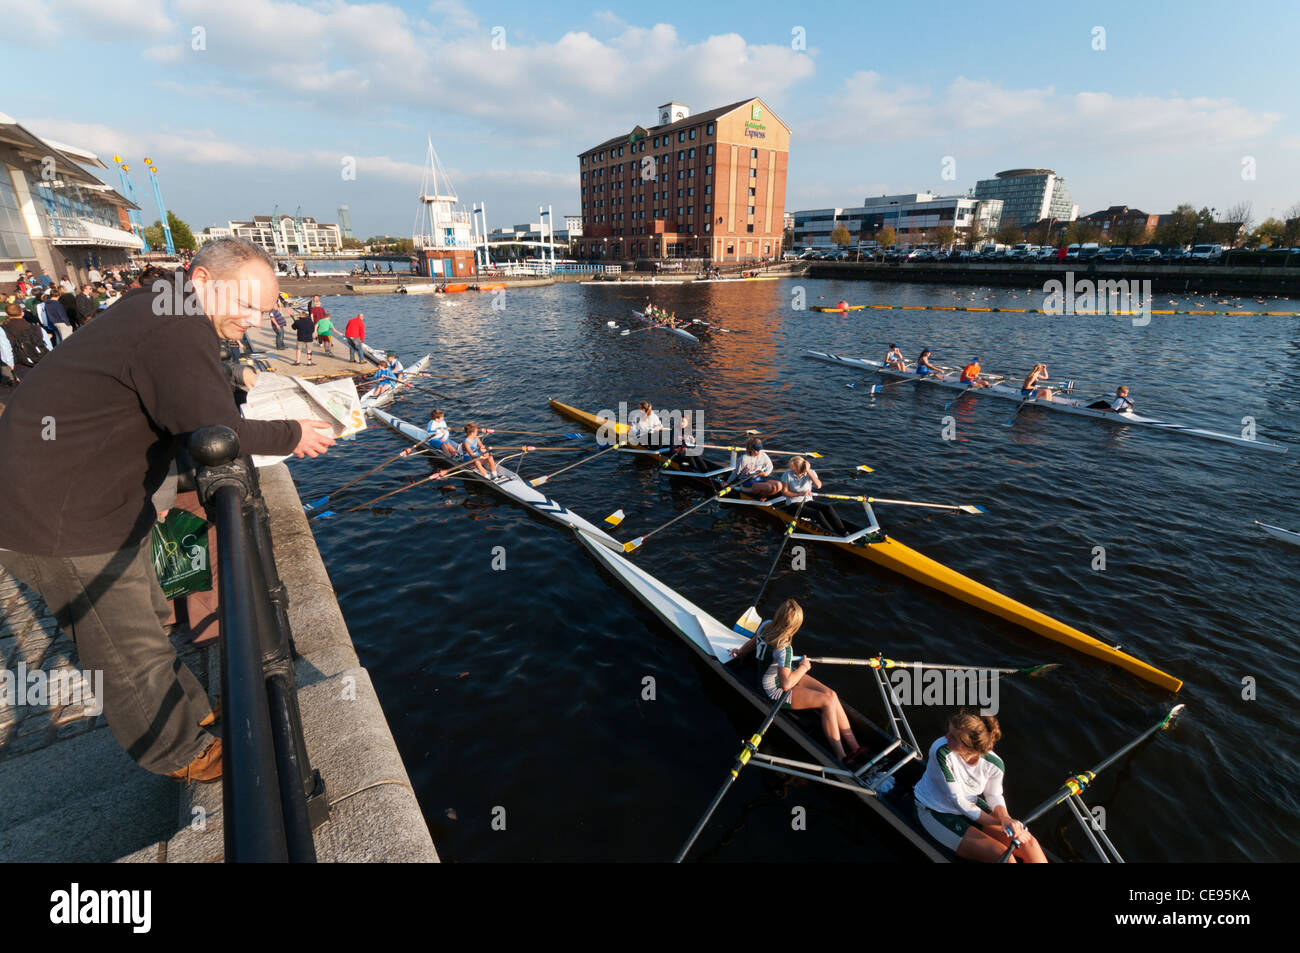 The Salford Watersports Centre and Holiday Inn Express at Ontario Basin, Salford Quays, Greater Manchester - Stock Image